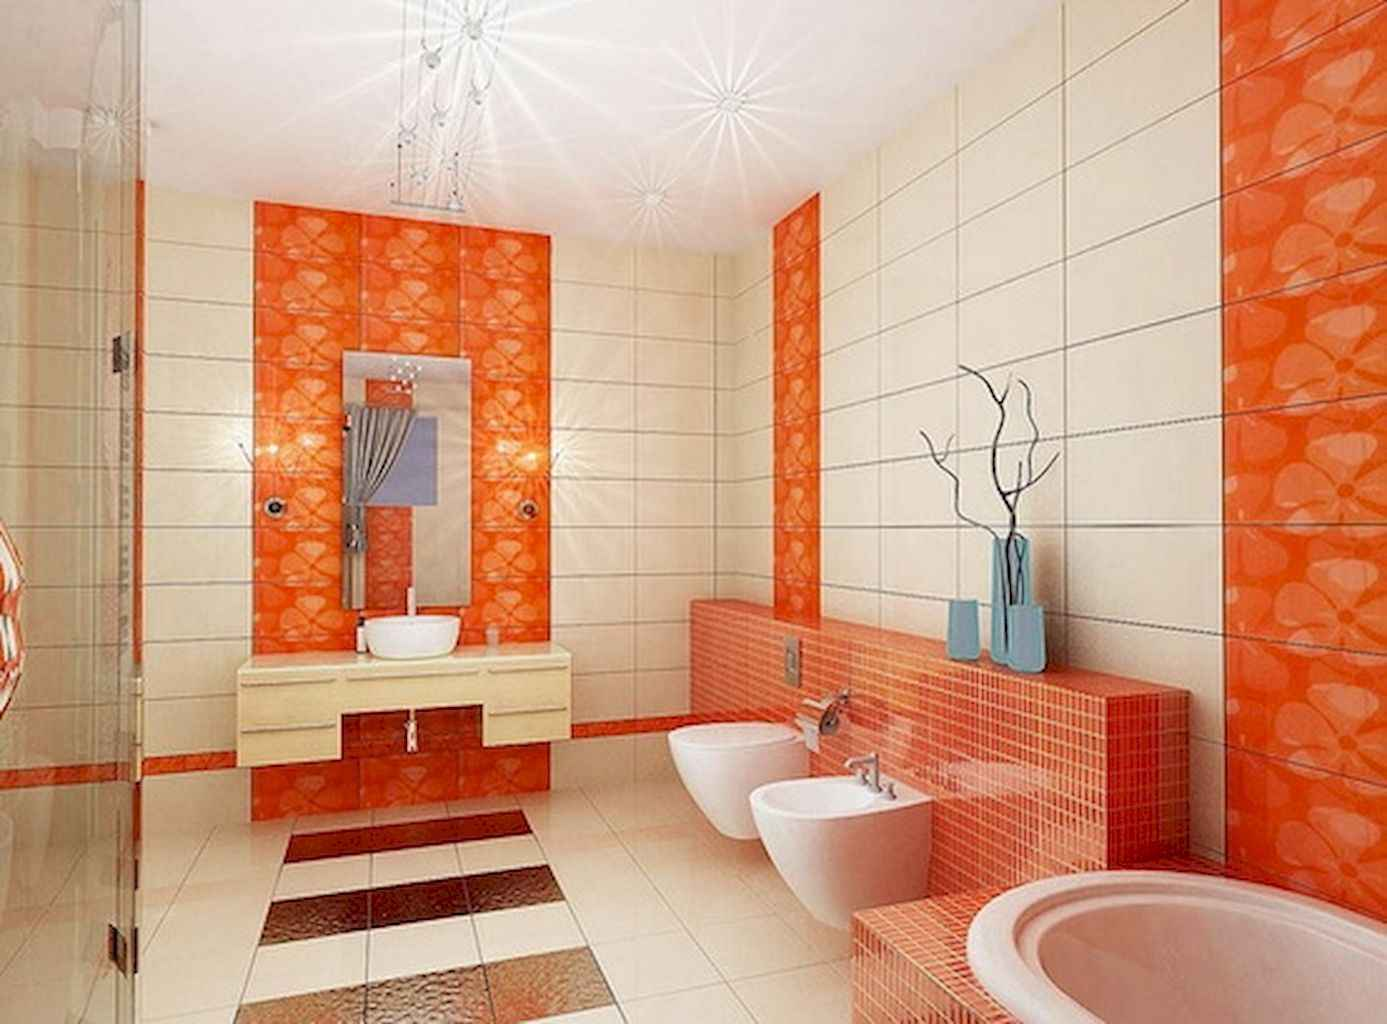 55 Cool and Relax Bathroom Decor Ideas (26)